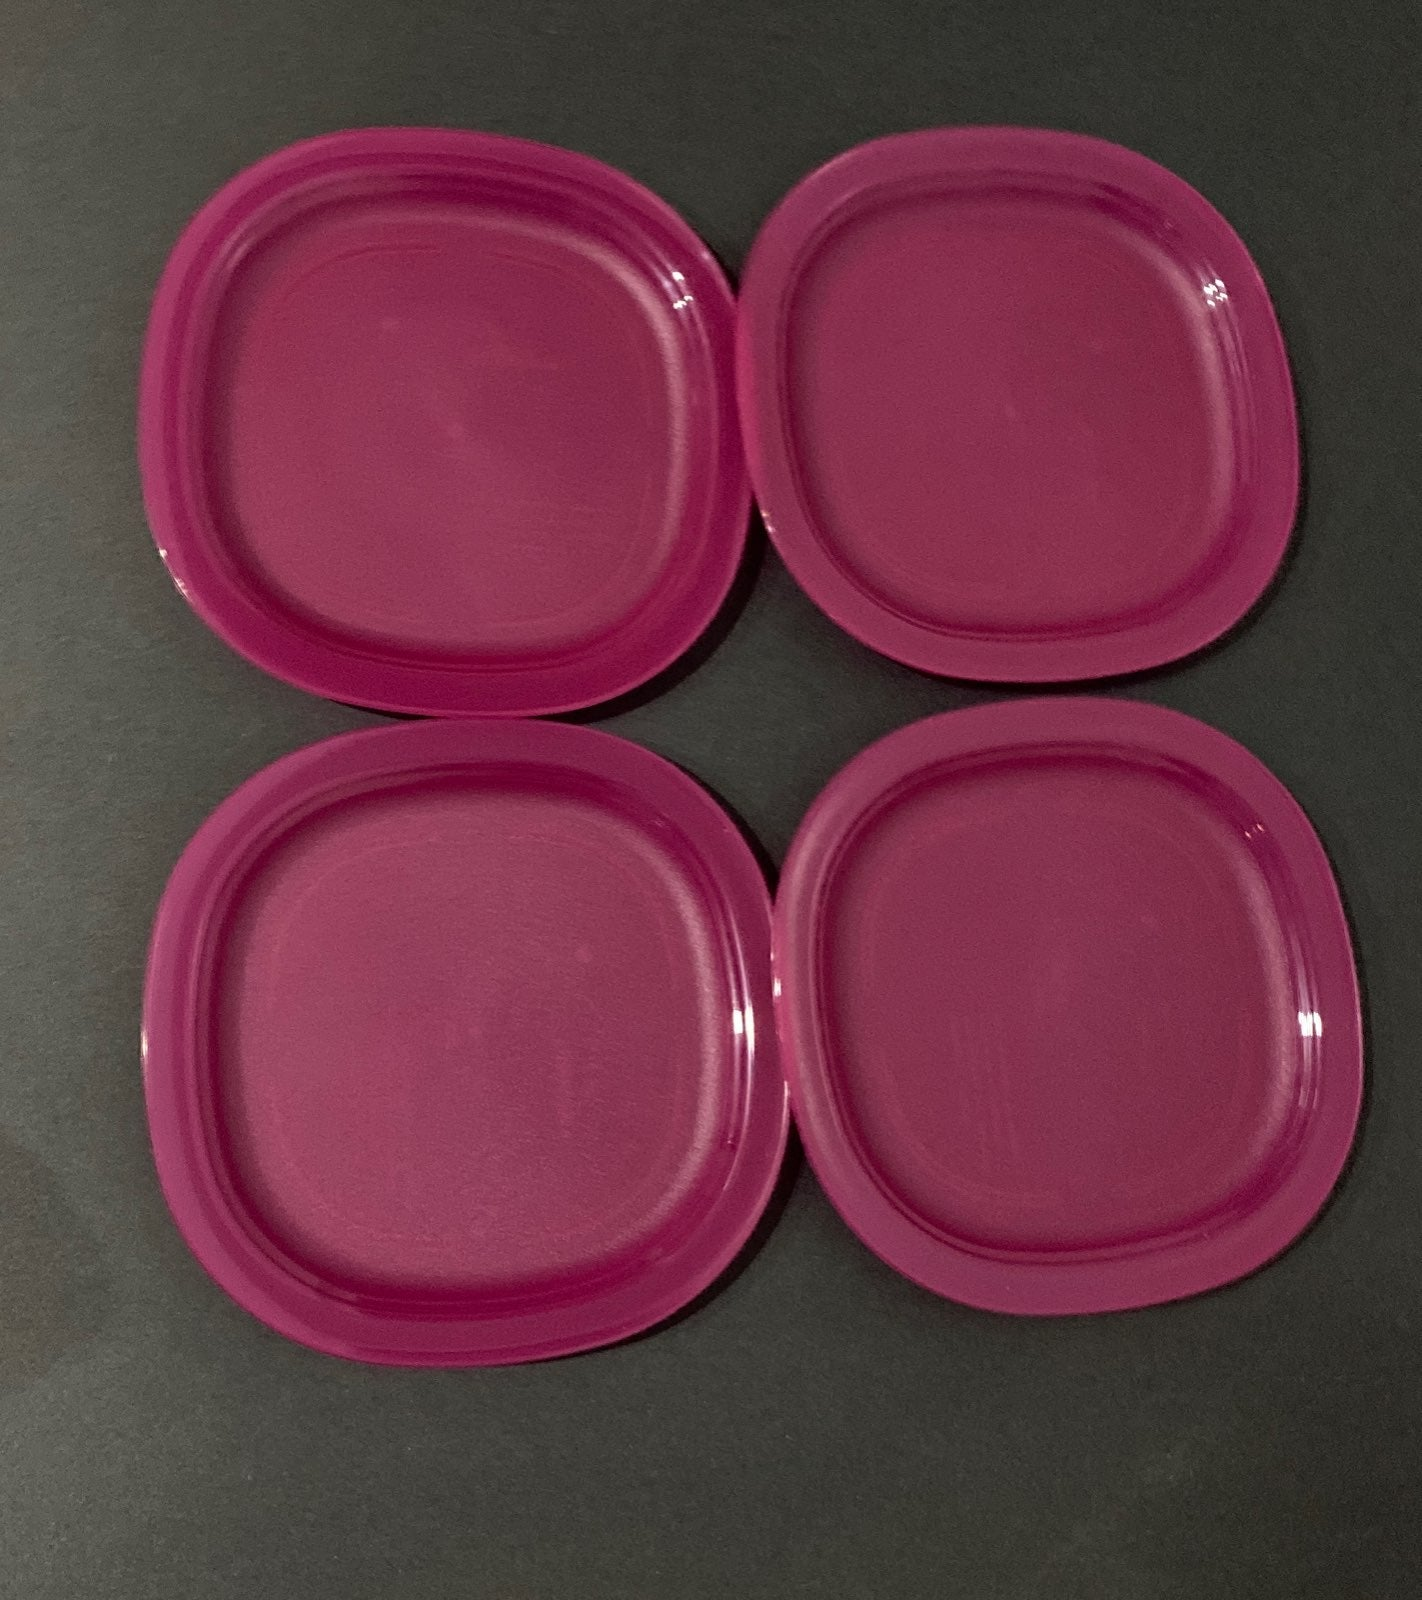 New!Tupperware set of 4  luncheon desser